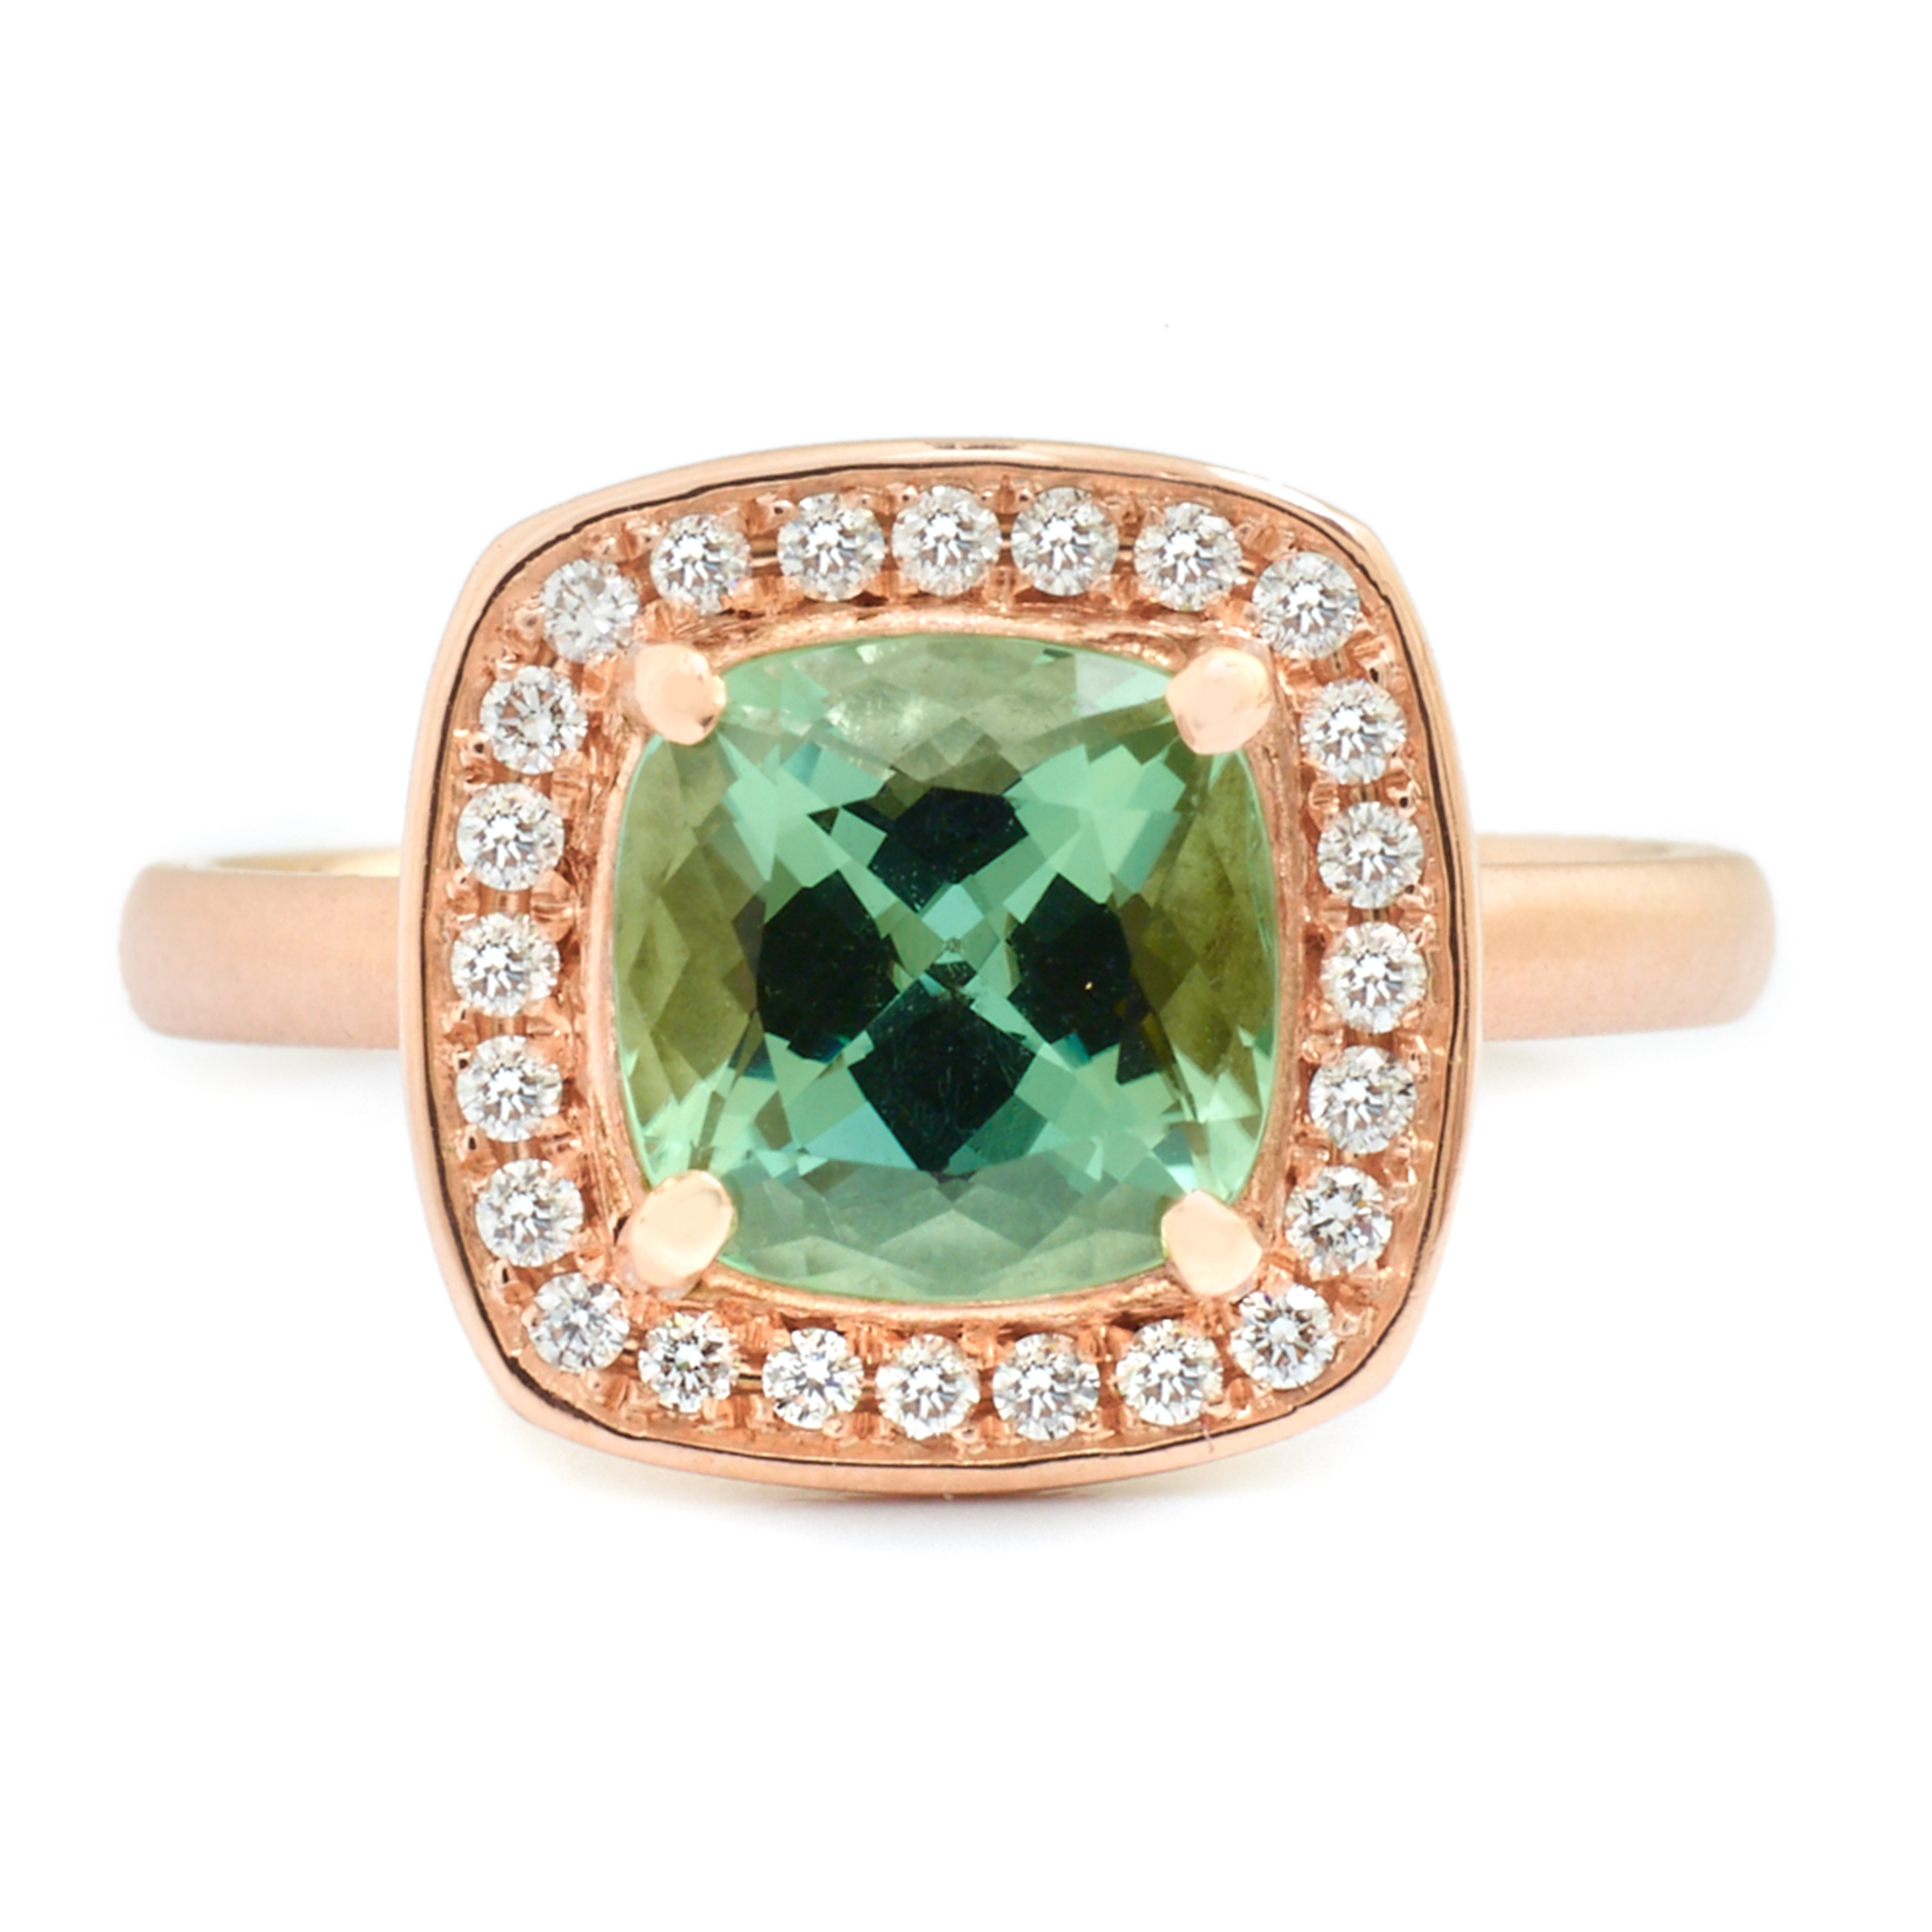 Anne Sportun Green Tourmaline Rose Gold Ring